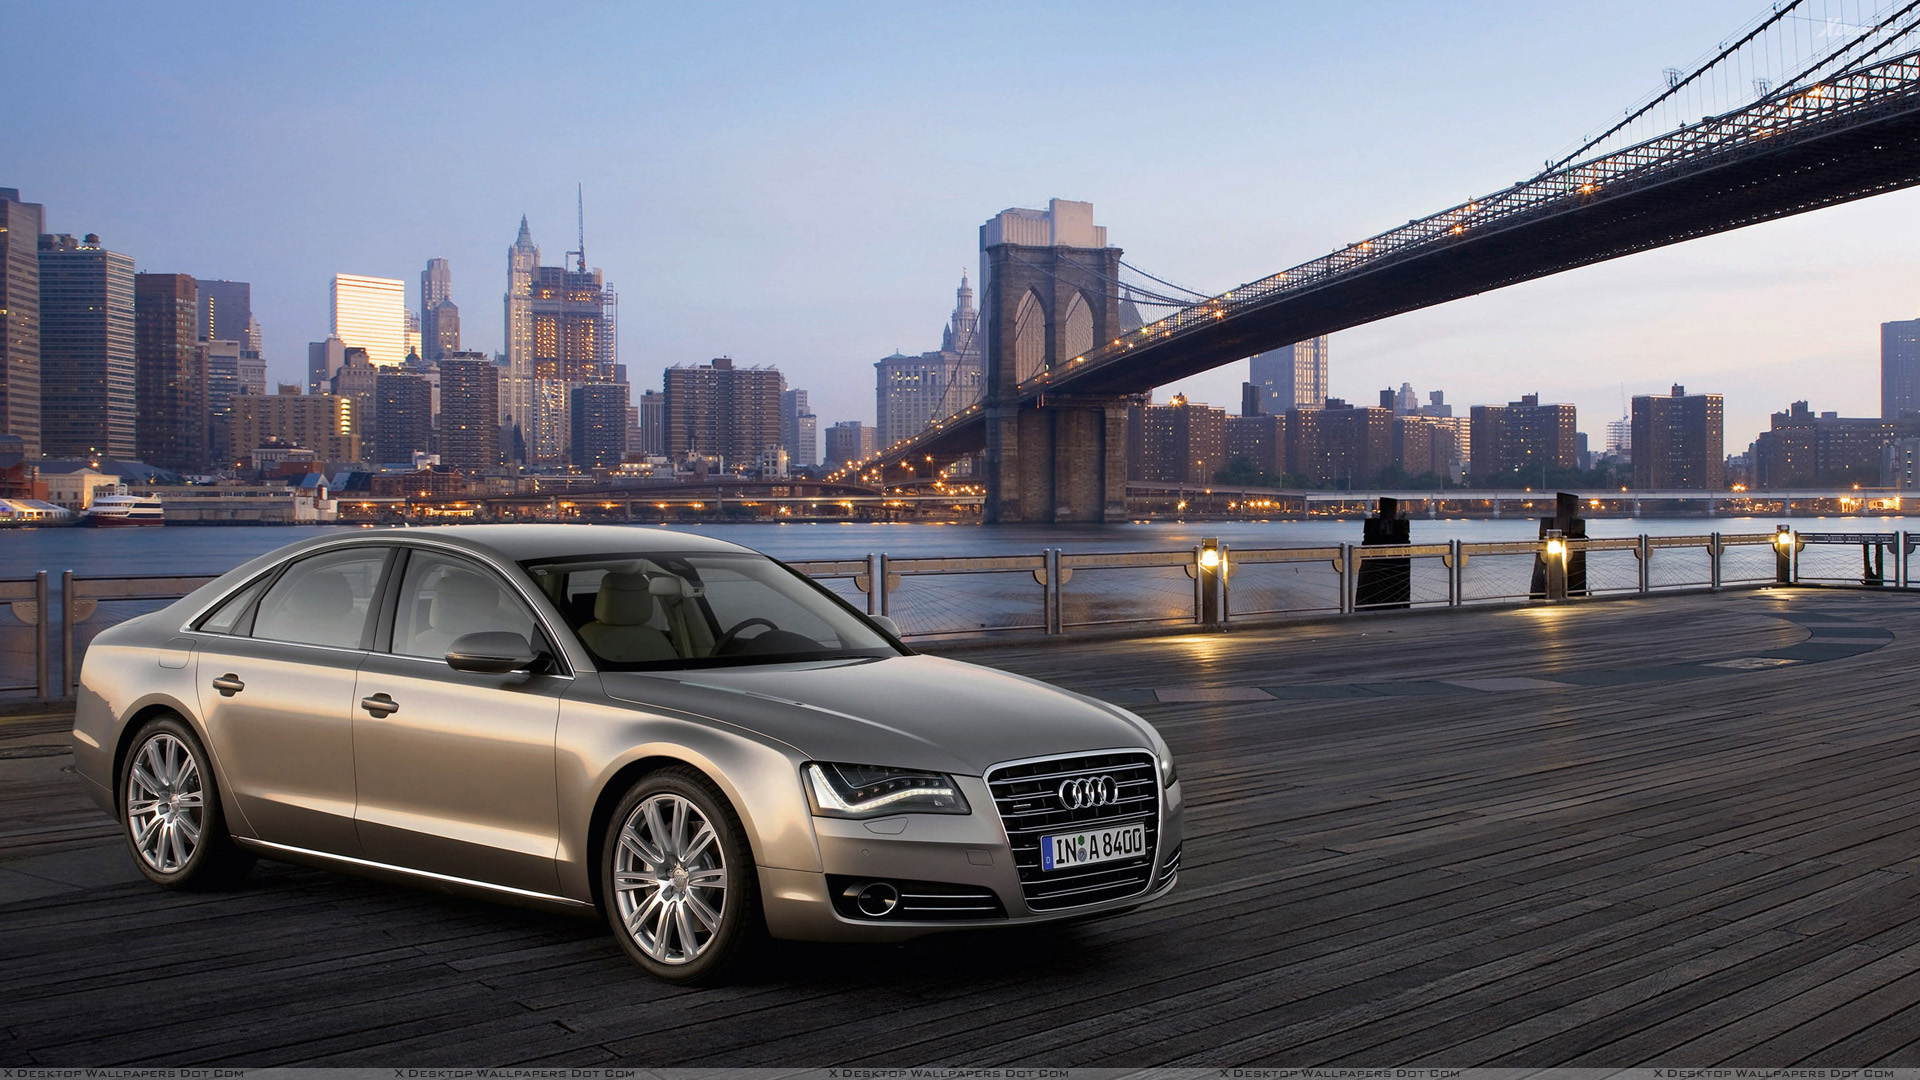 2011 Audi A8 Side Front Pose In Golden Wallpapers